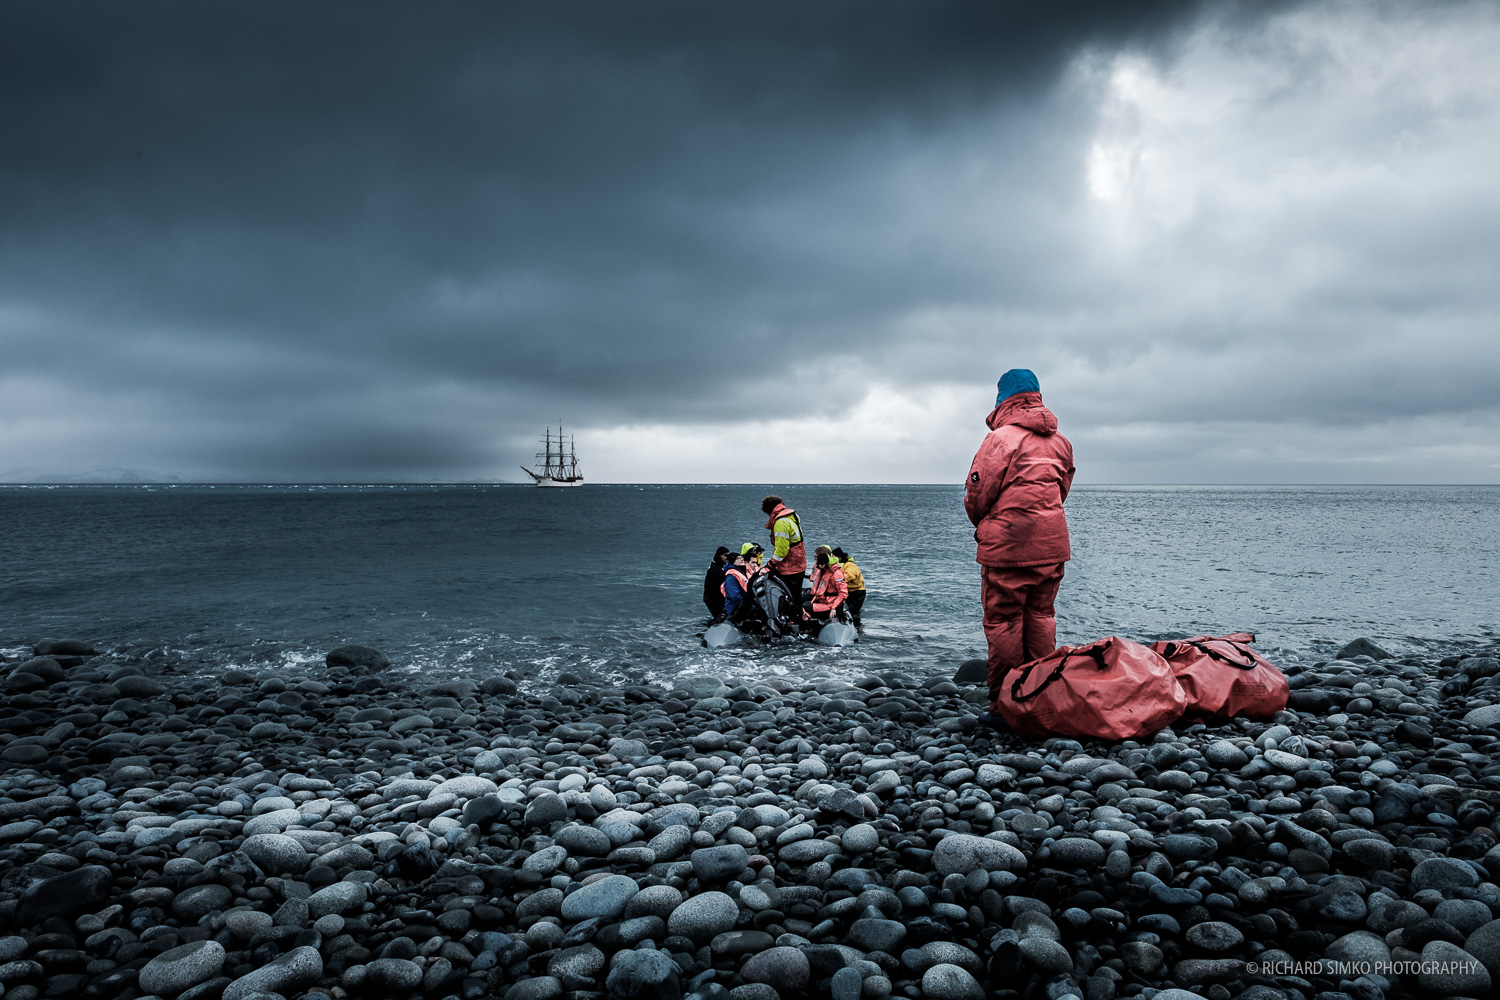 Europa anchoring at the shores of Deception Island. The crew on the zodiac is landing on the shores of Whalers Bay